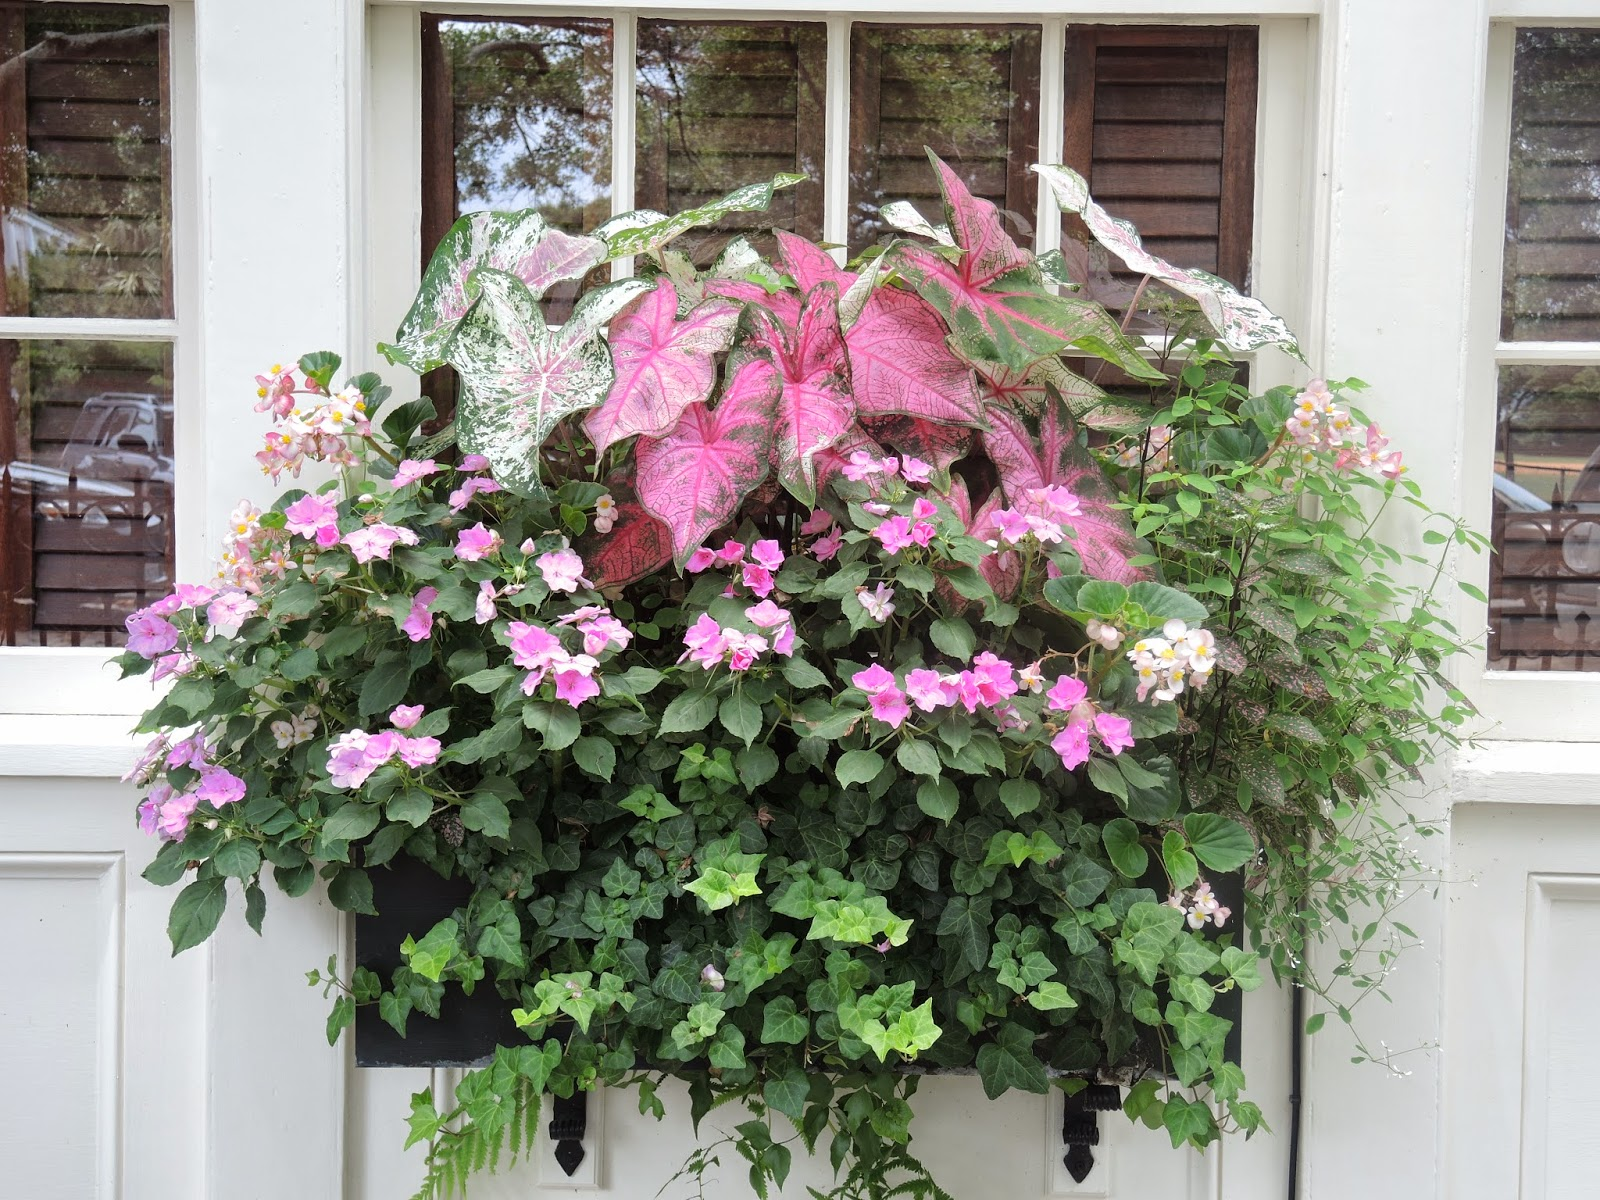 JLL DESIGN: Taking a Stroll: Window Boxes